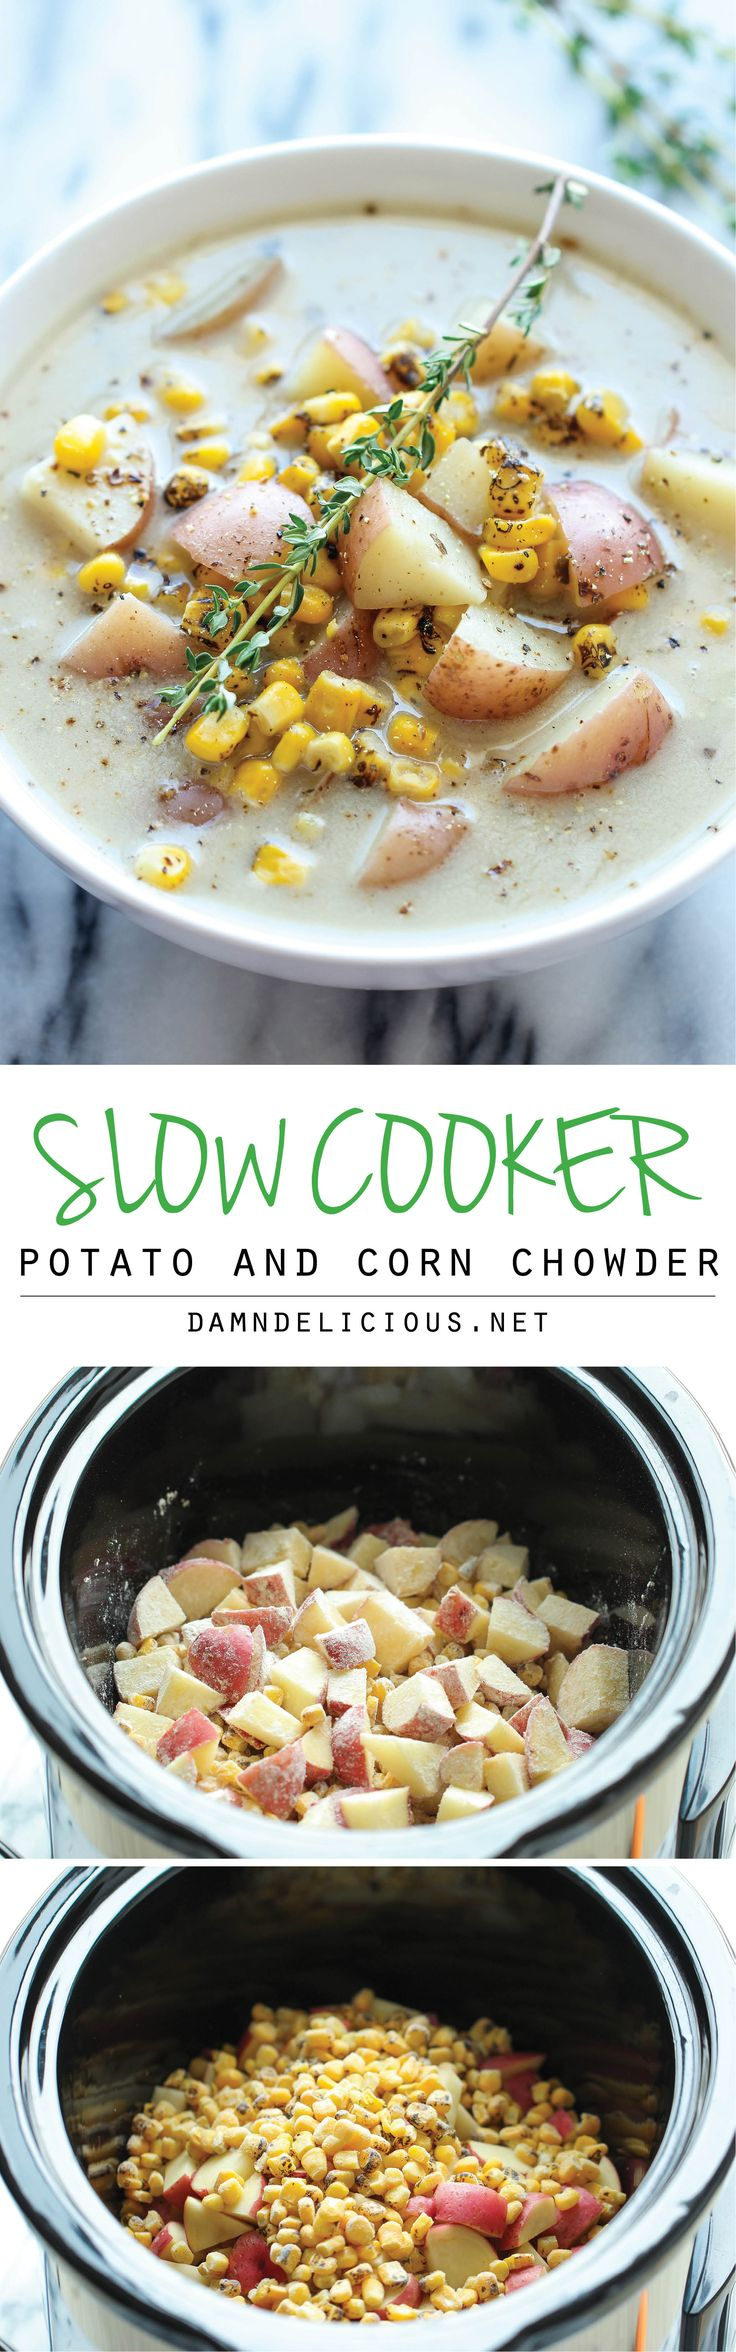 {USA} Slow Cooker Potato and Corn Chowder - The easiest chowder you will ever make. Throw everything in the crockpot and you're set! Easy peasy and so cozy!